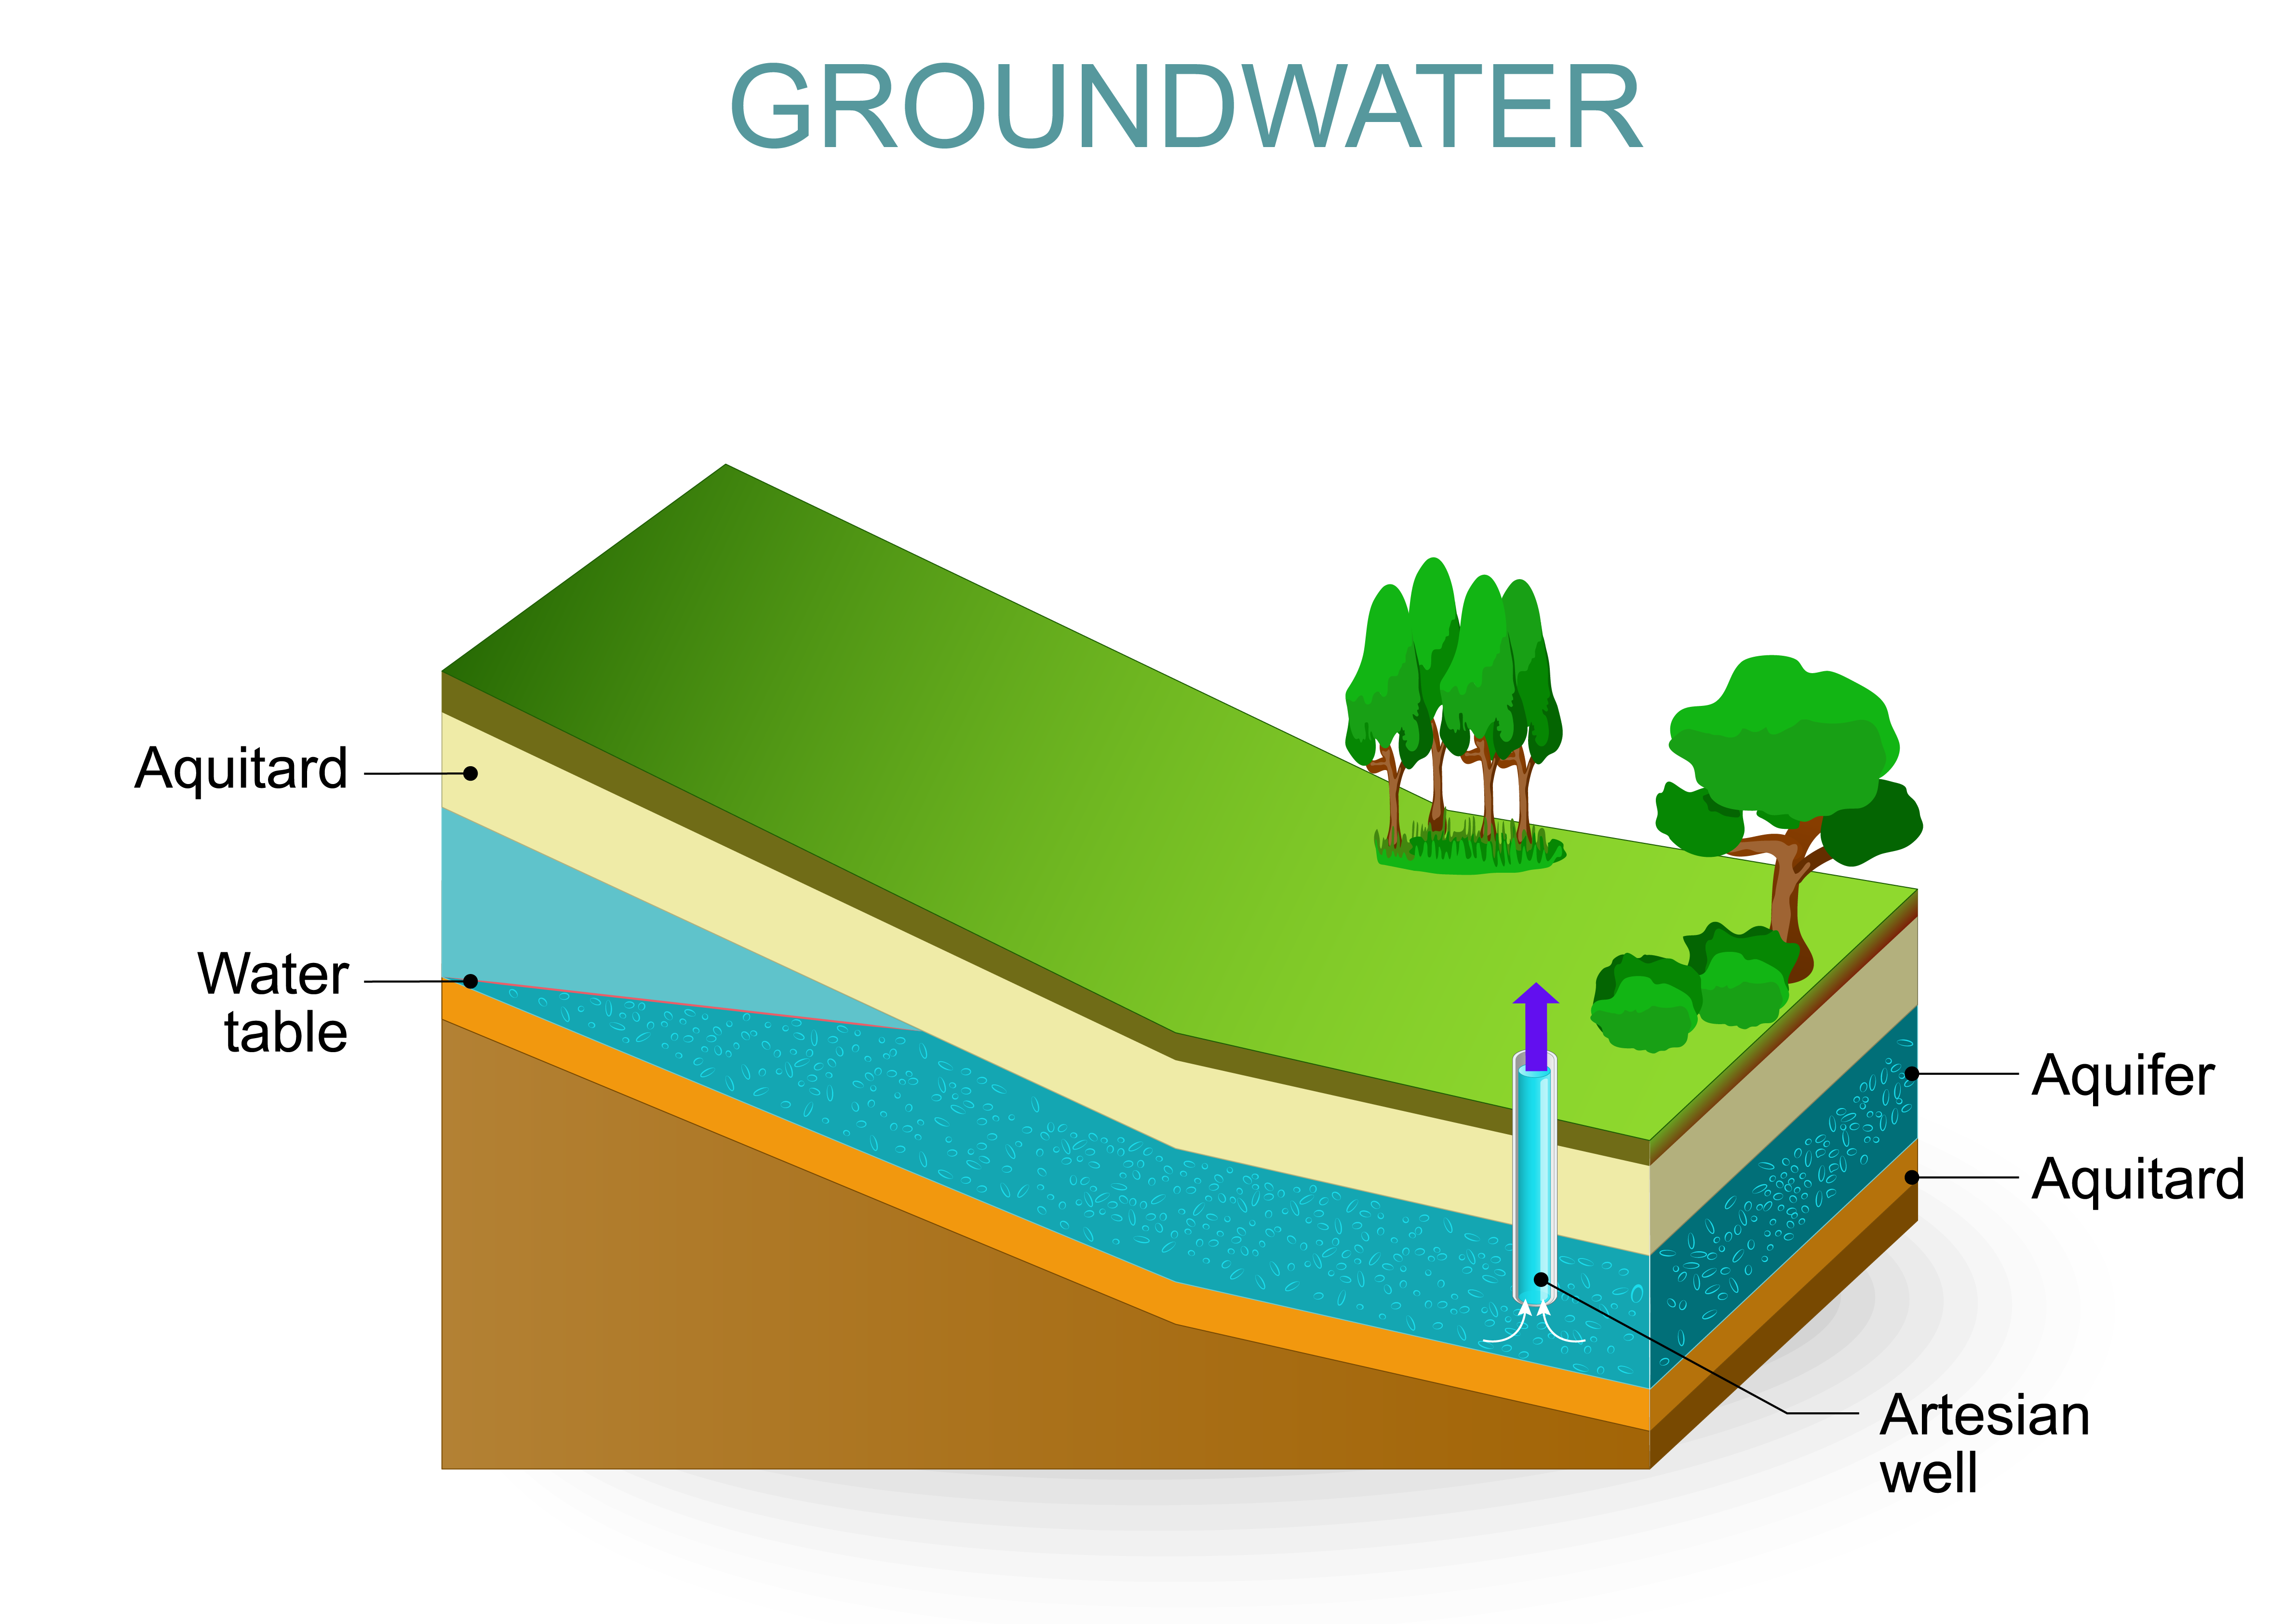 Graphic of artisan well and aquifer